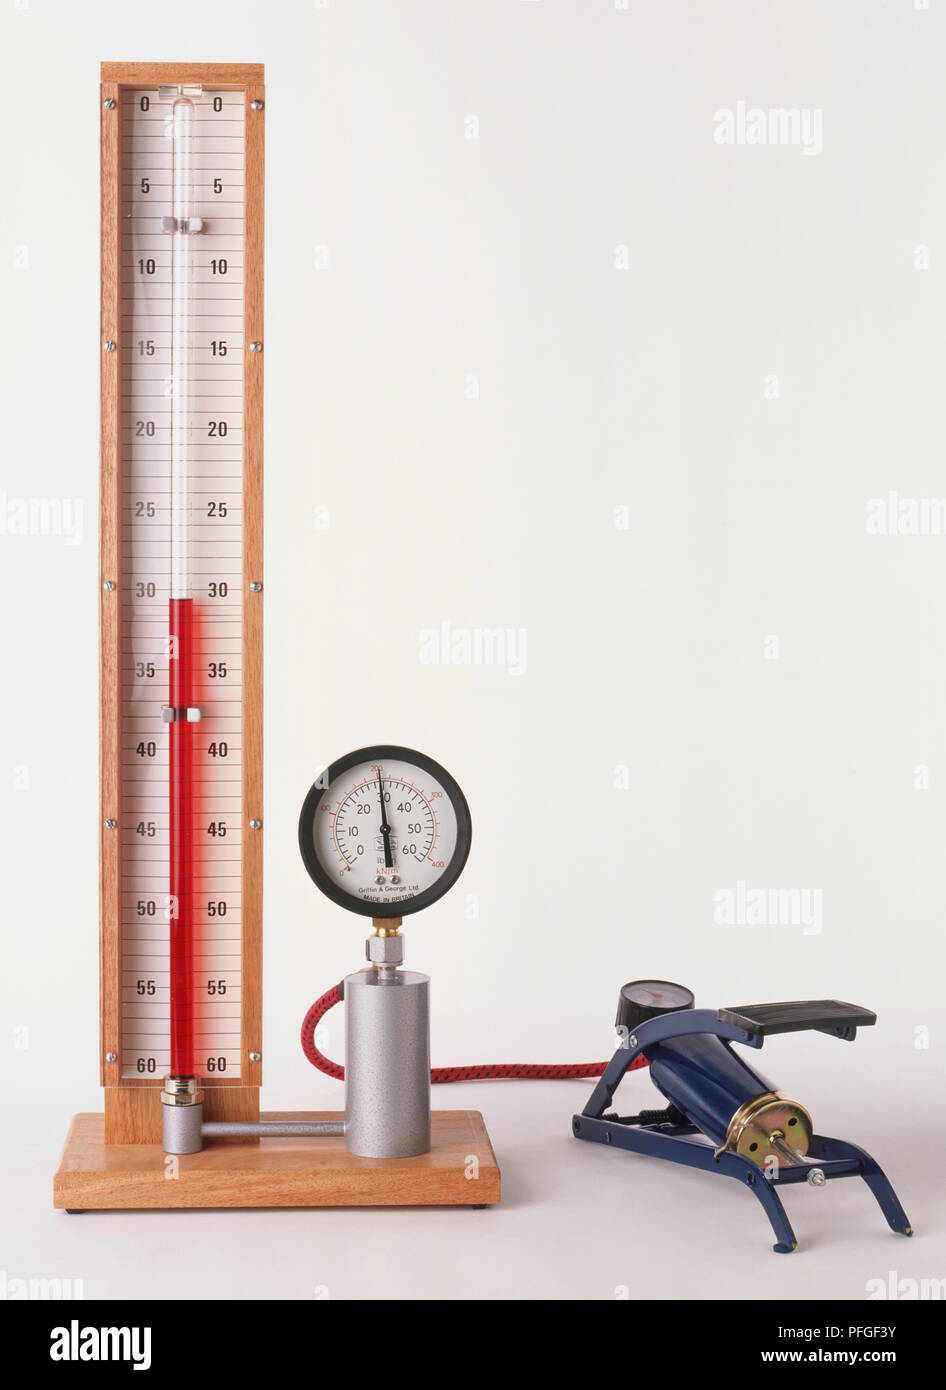 Apparatus to measure pressure with foot pump showing Boyle's Law, the volume of mass of gas at a fixed temperature will change in relation to the pressure. - Stock Image